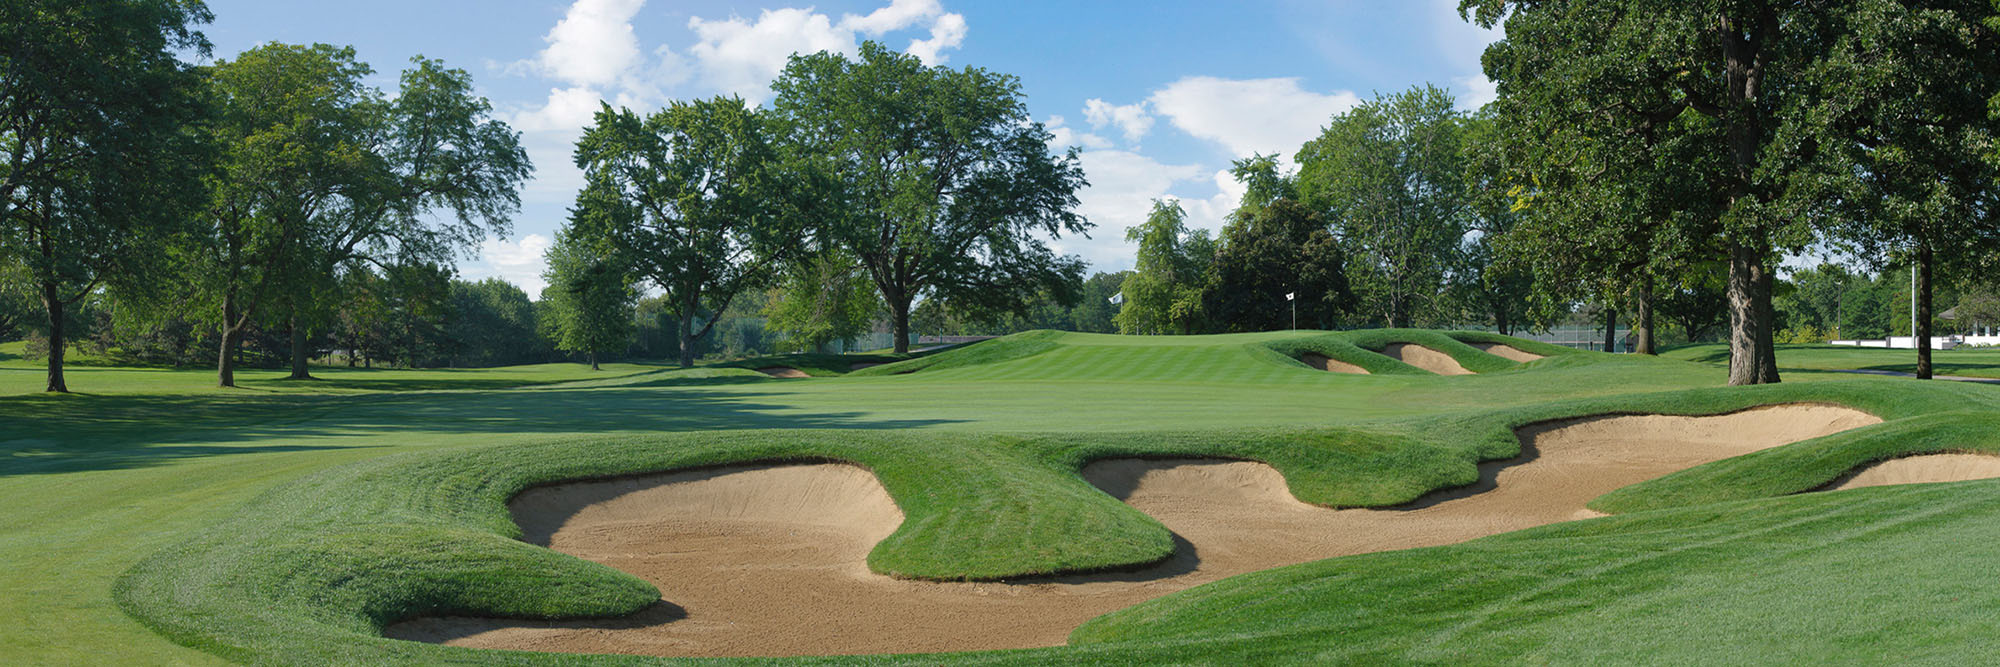 Golf Course Image - Cog Hill 4 No. 9